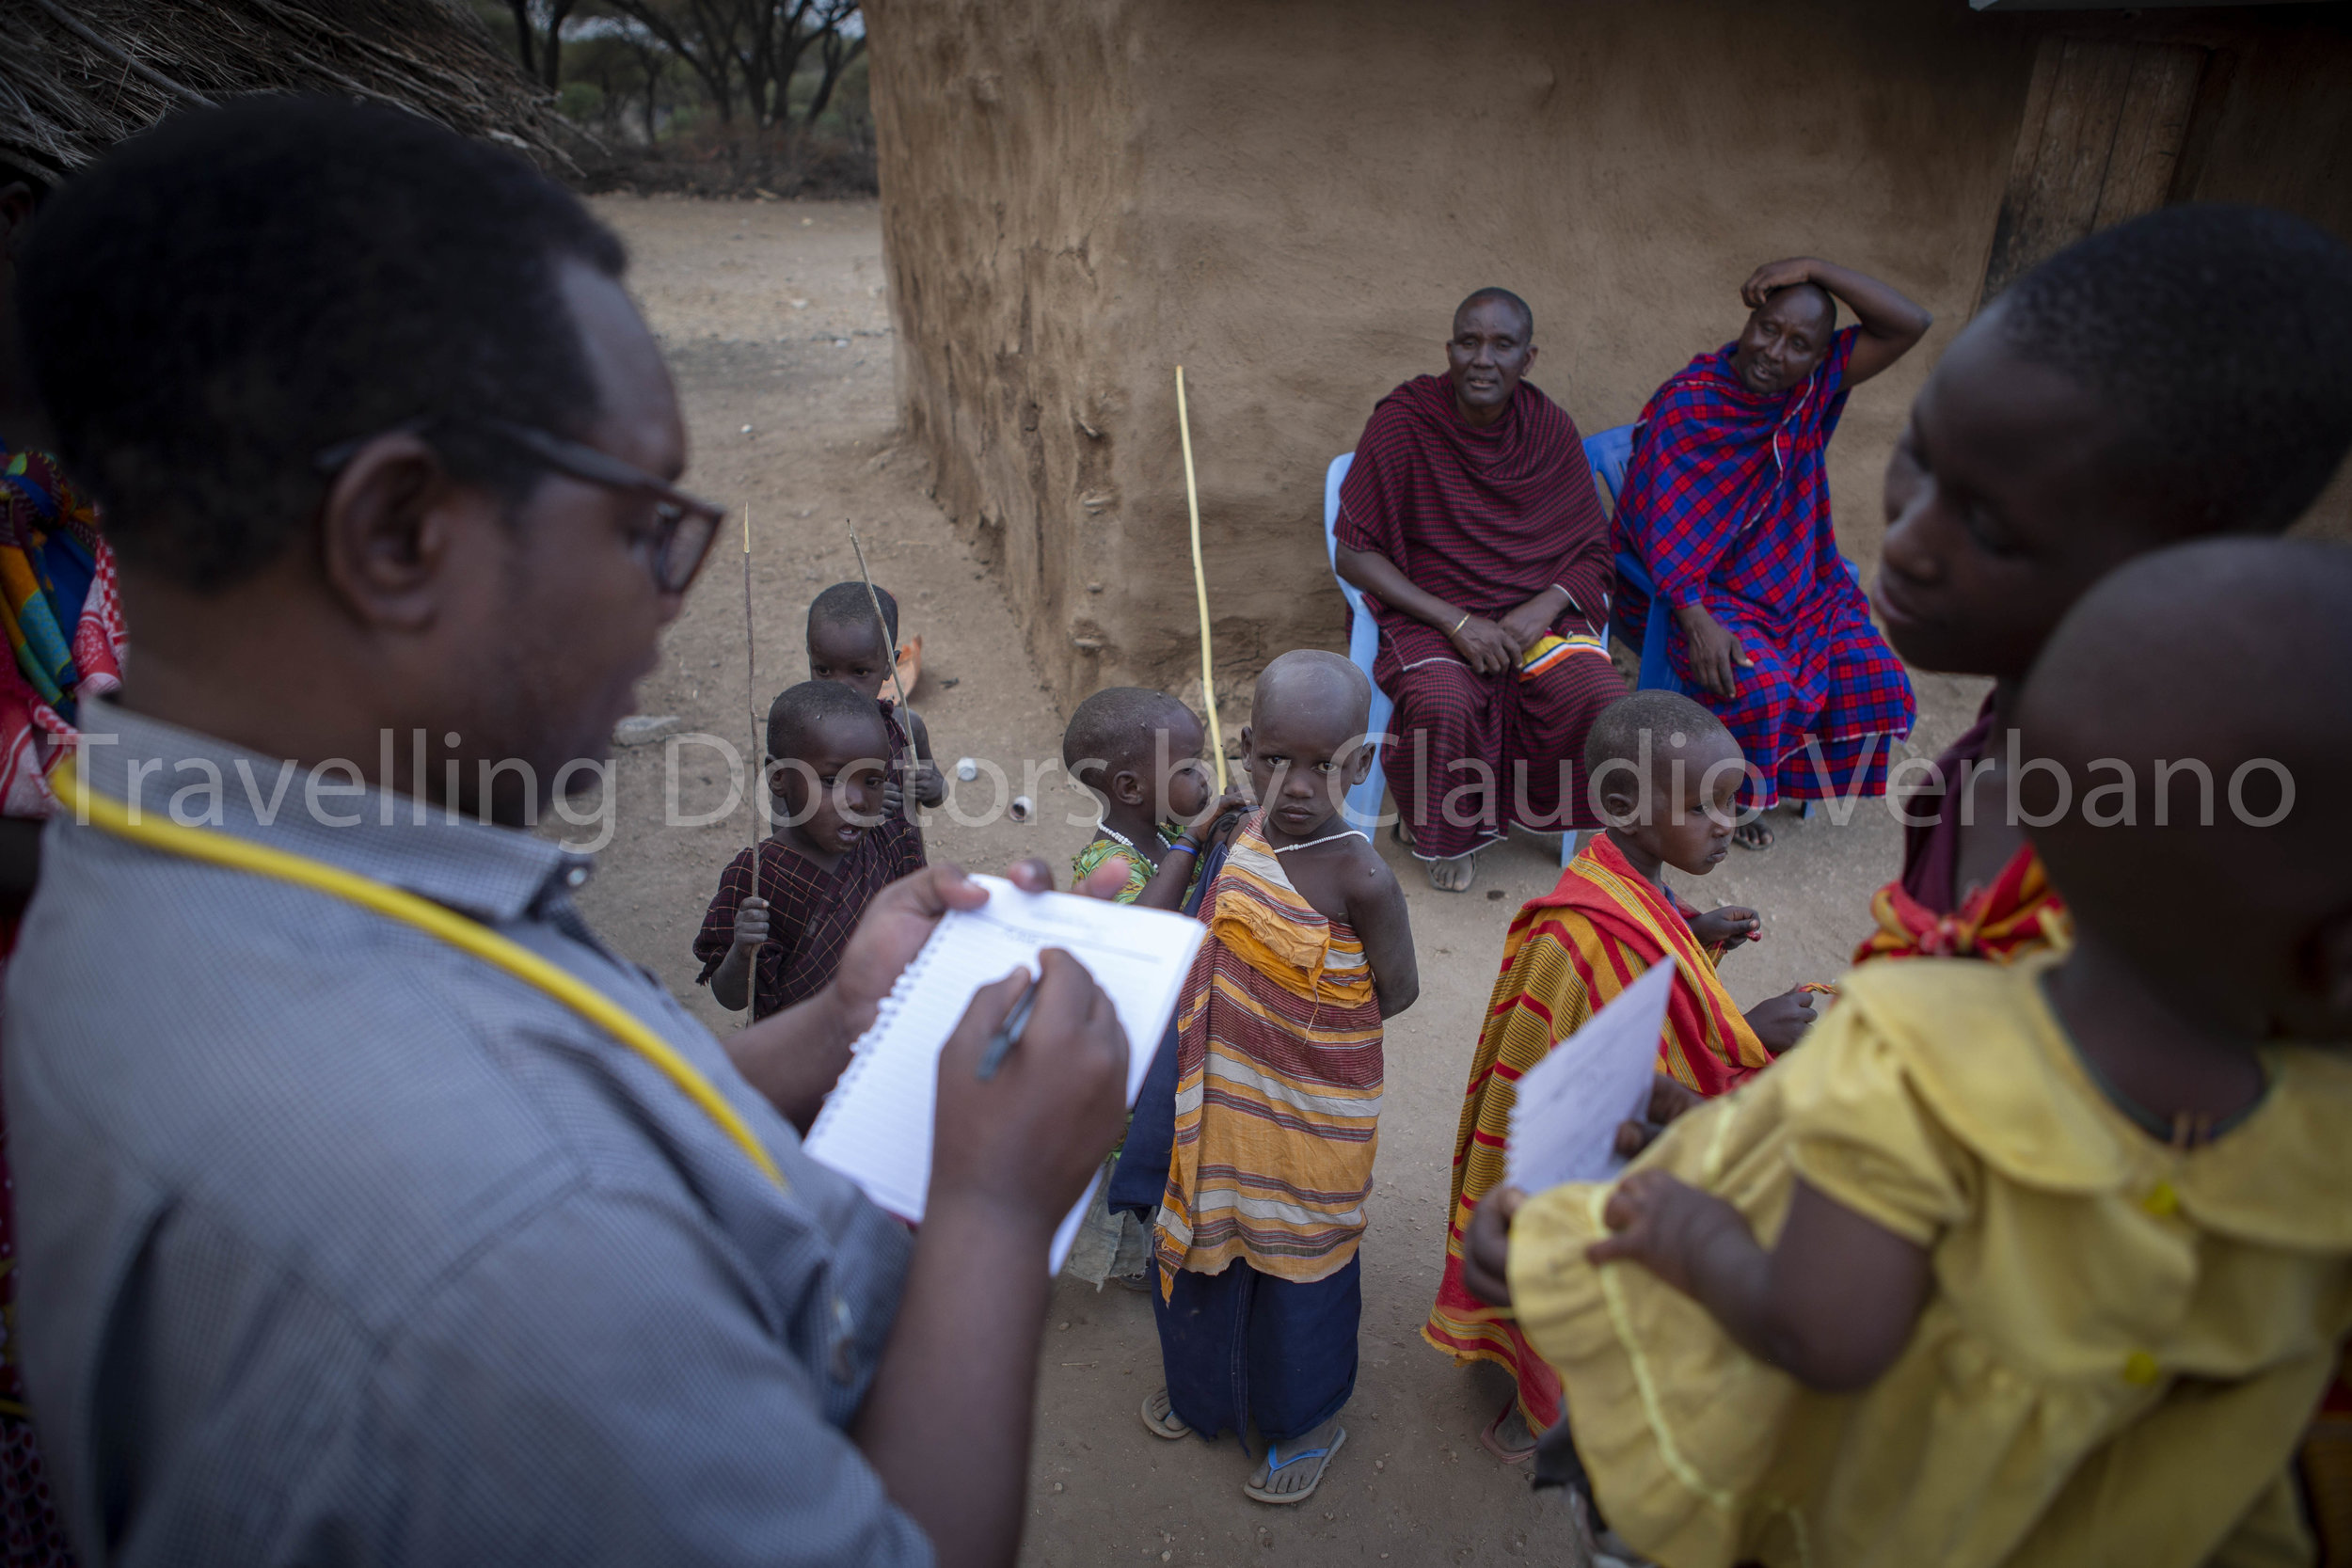 Travelling Doctors Tanzania by Claudio Verbano-8.jpg